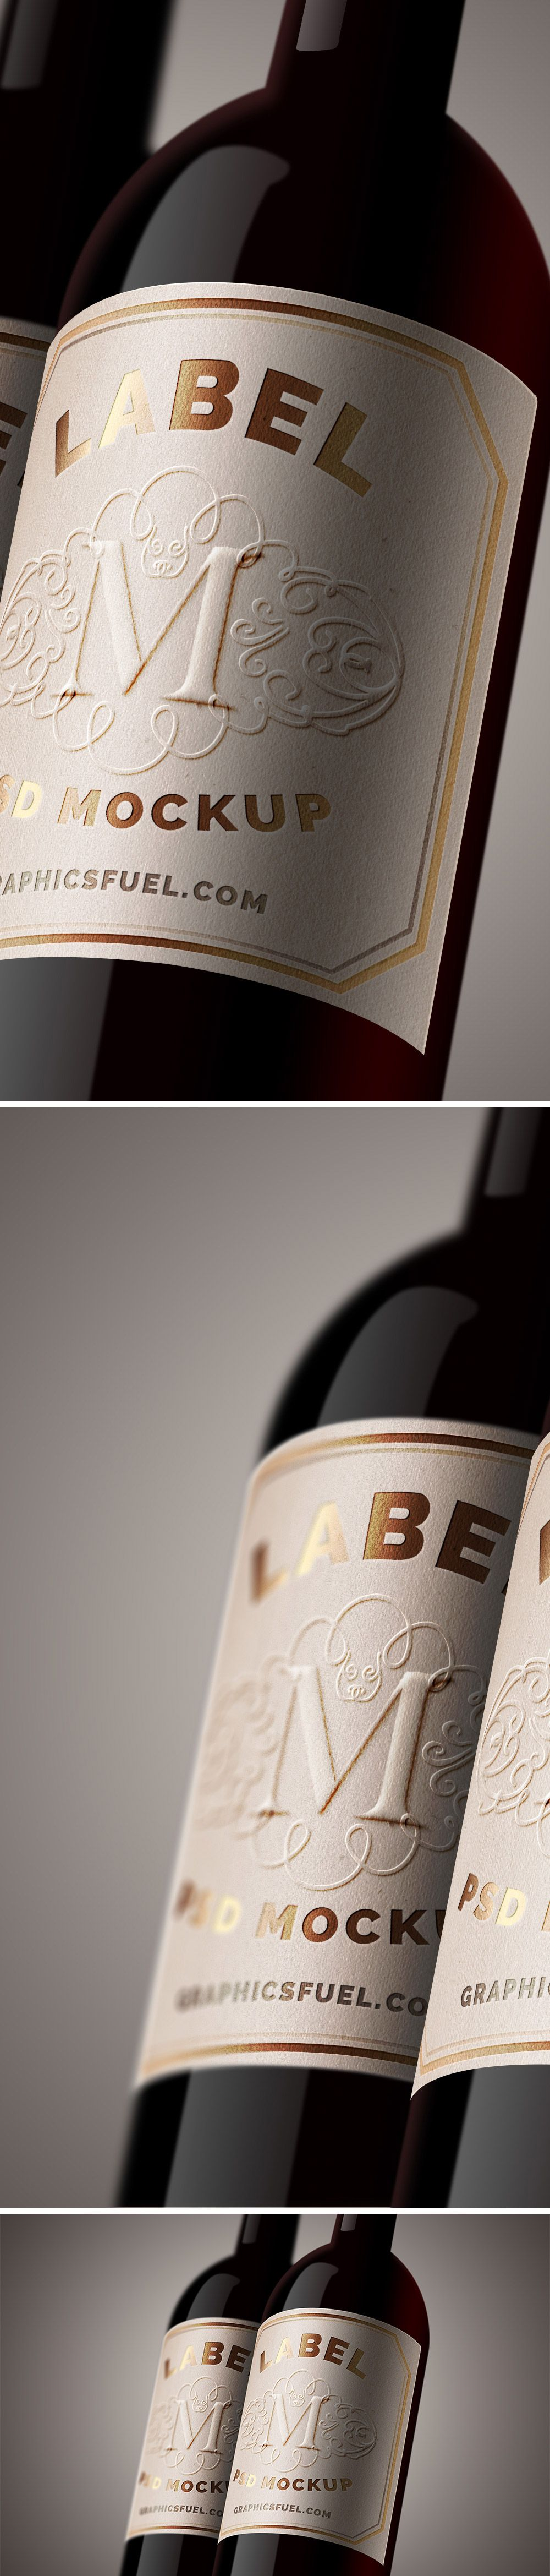 Marvelous Have A Nice Day With This Wine Bottle Label PSD Mockup! Present Your Wine  Bottle Label In An Authentic And Realistic Way. Check It Out U0026 Grab It For  FREE!